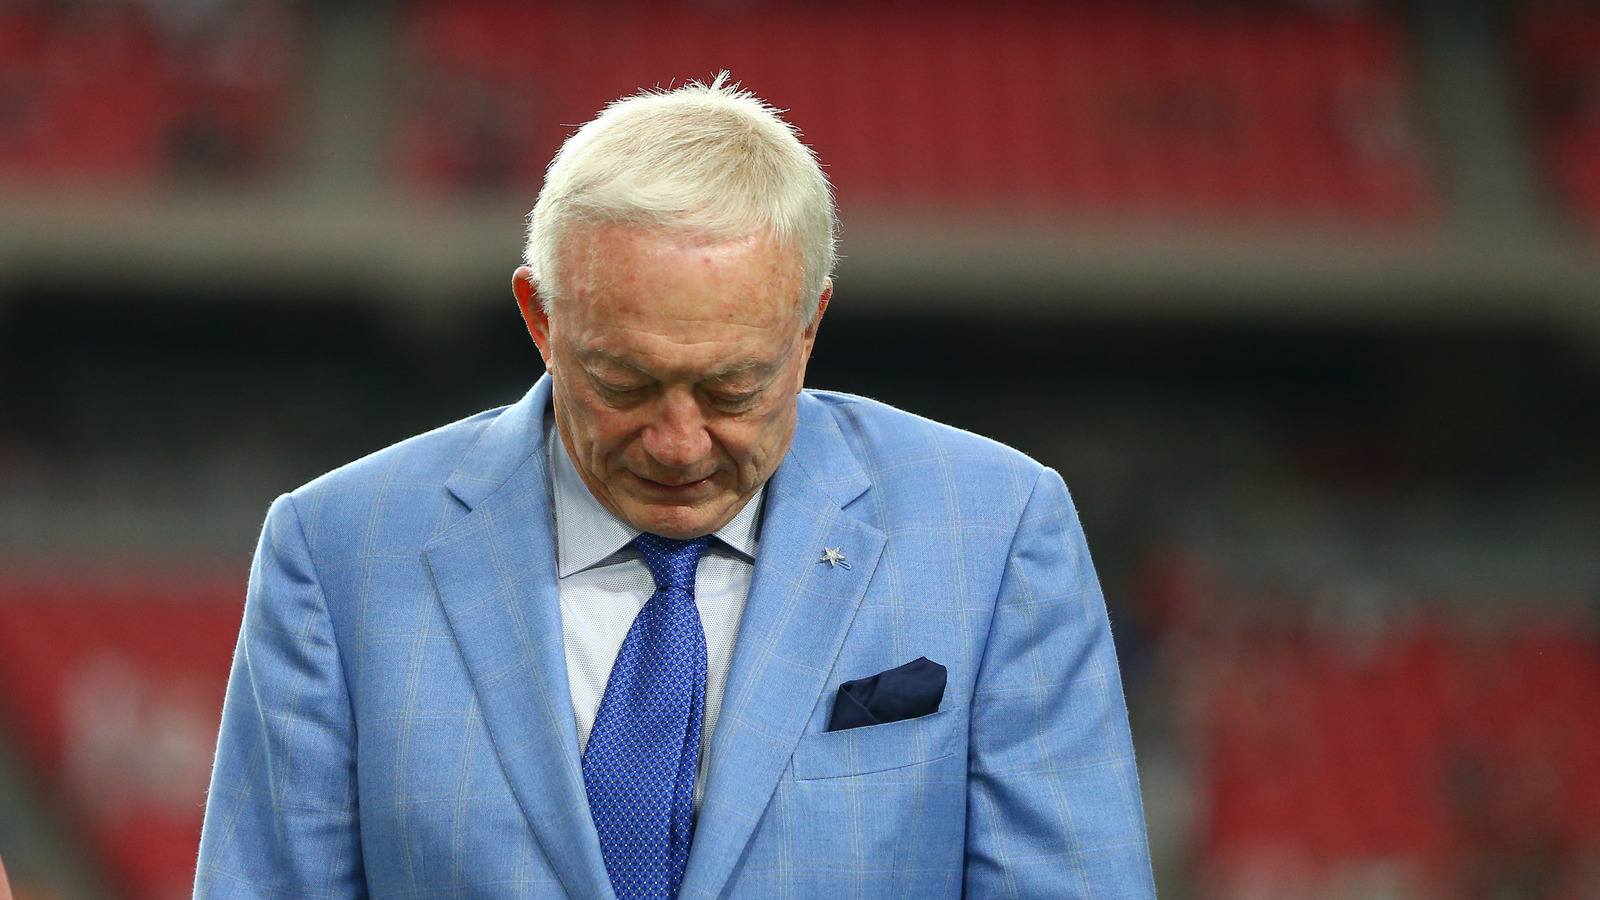 Jerry Jones says Dallas Cowboys were not influenced by Trump phone calls